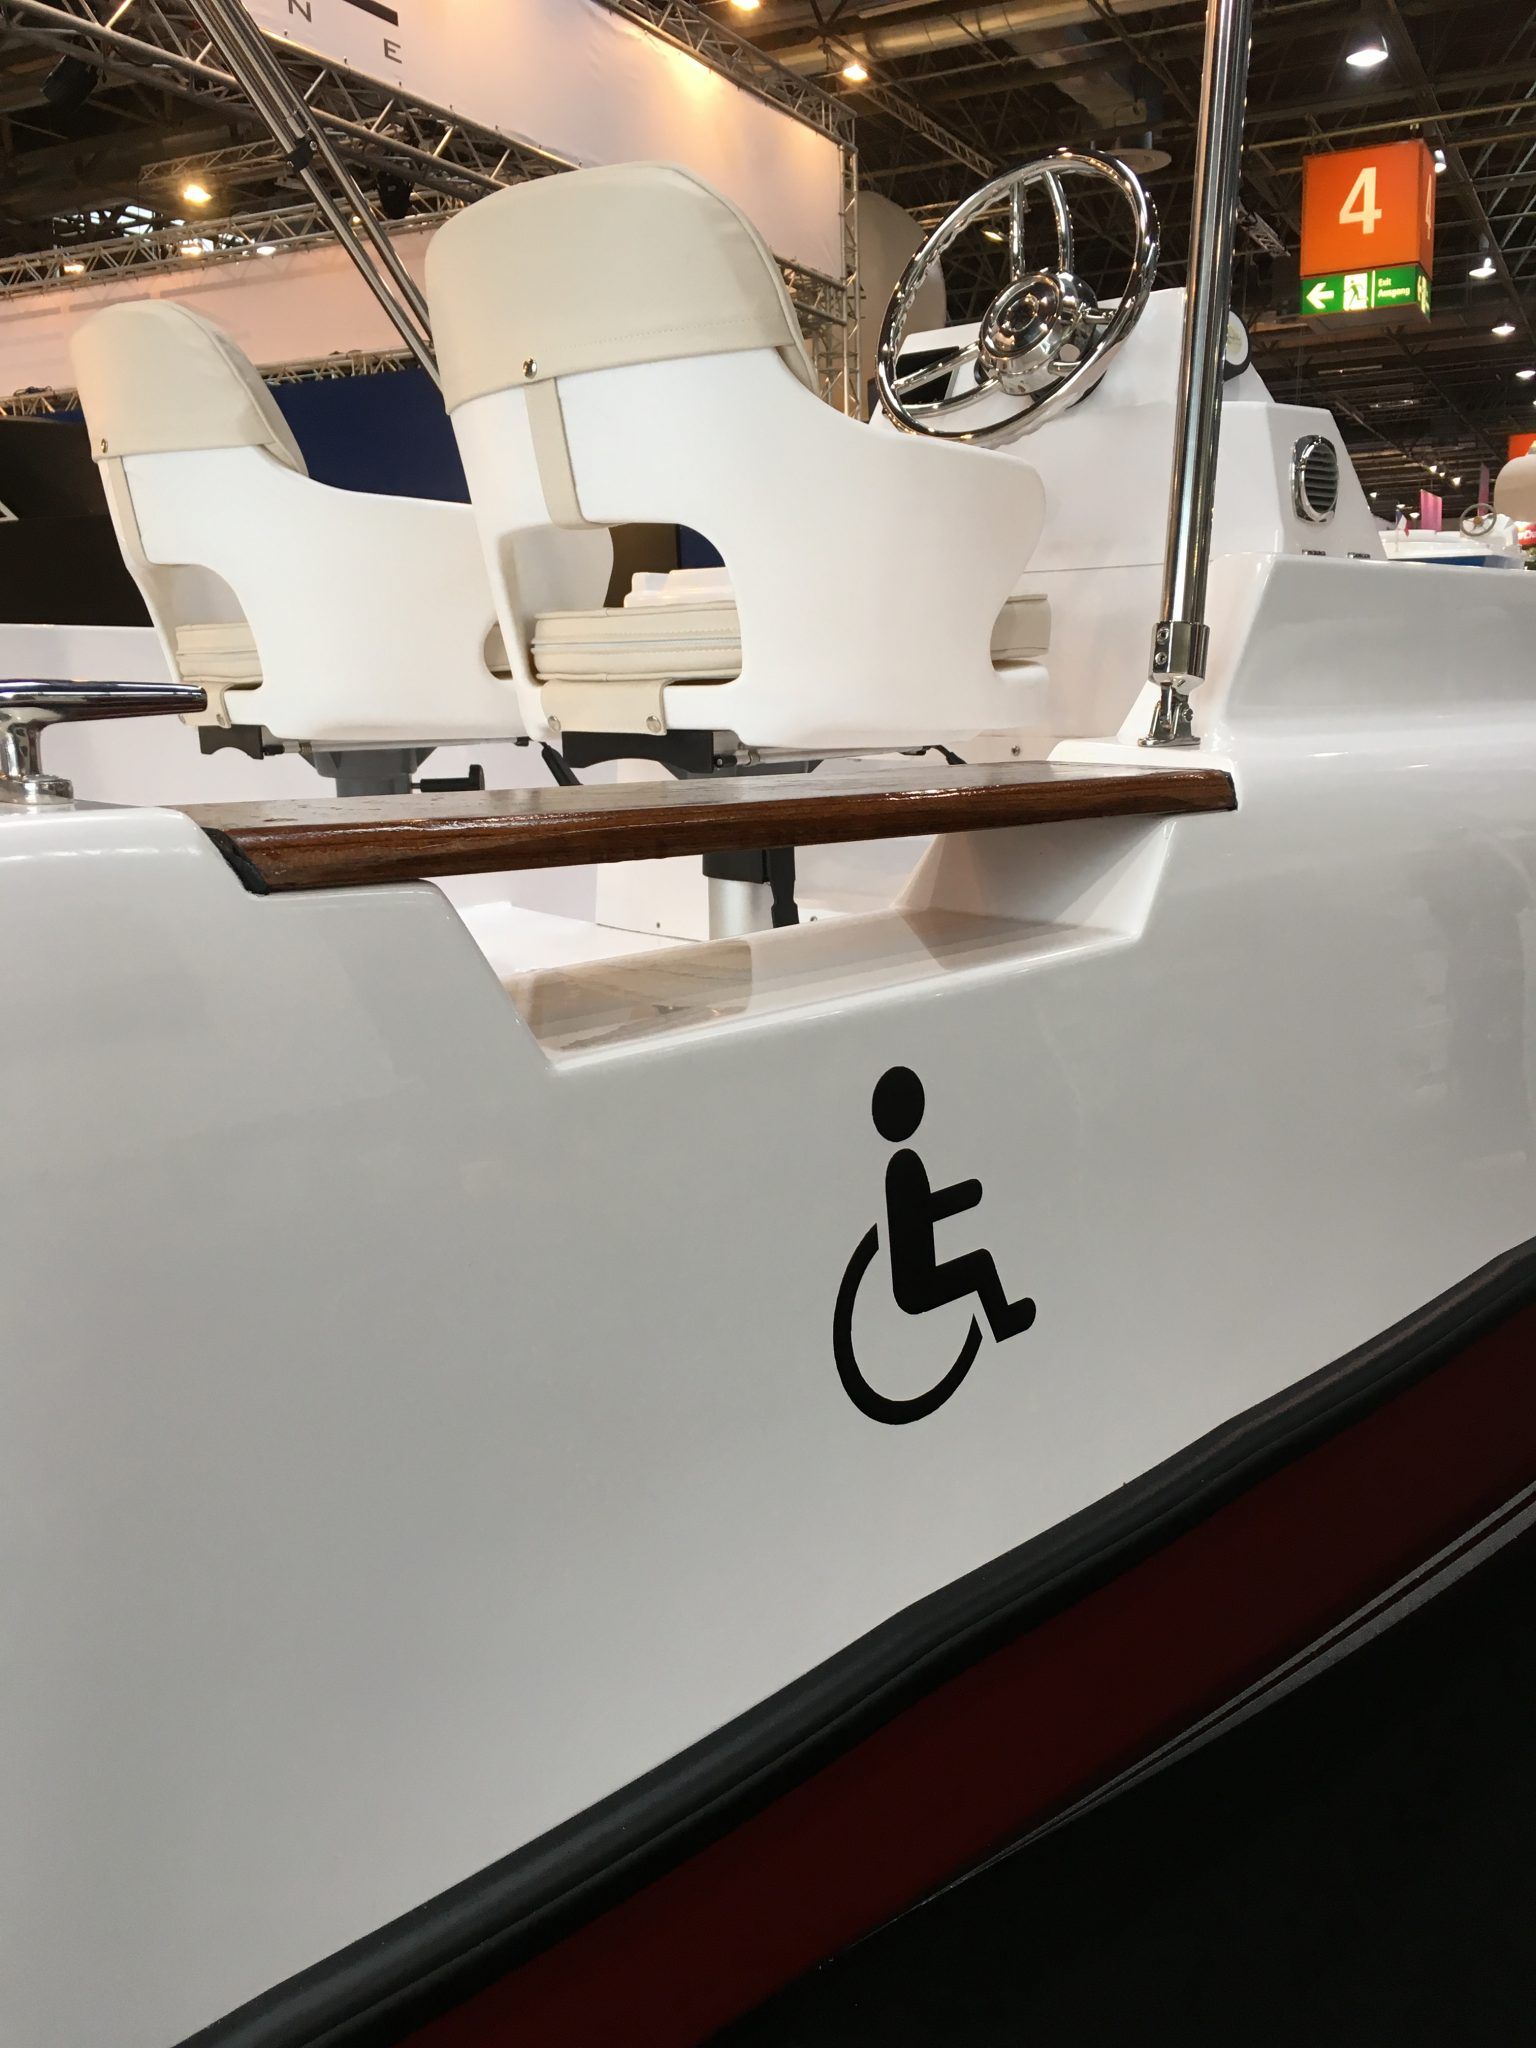 A photograph of an Electric boat with Wheelchair Access